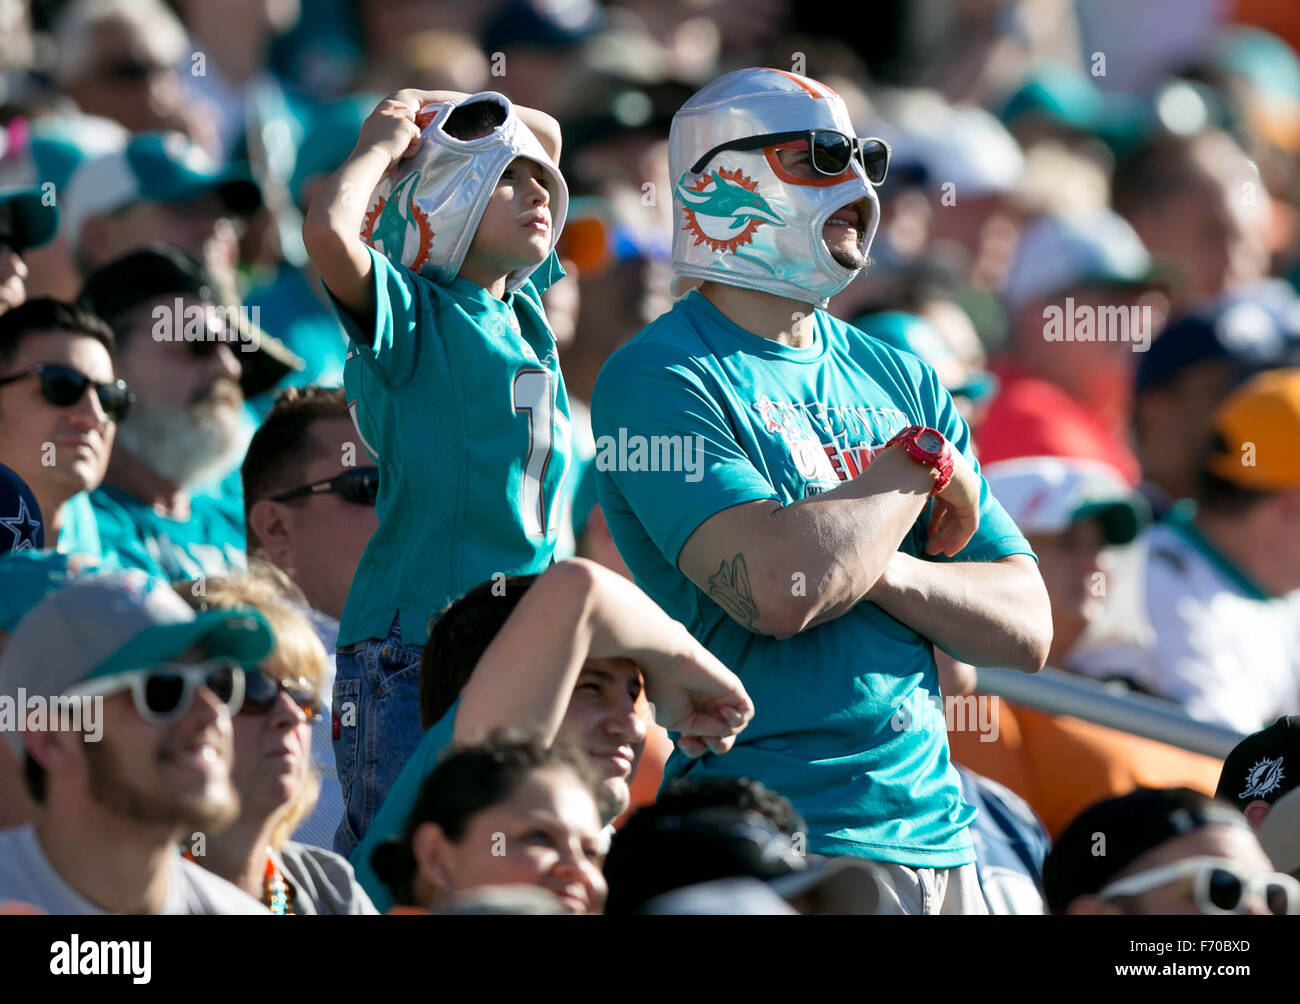 1a127b60 Dolphins Fans Stock Photos & Dolphins Fans Stock Images - Alamy